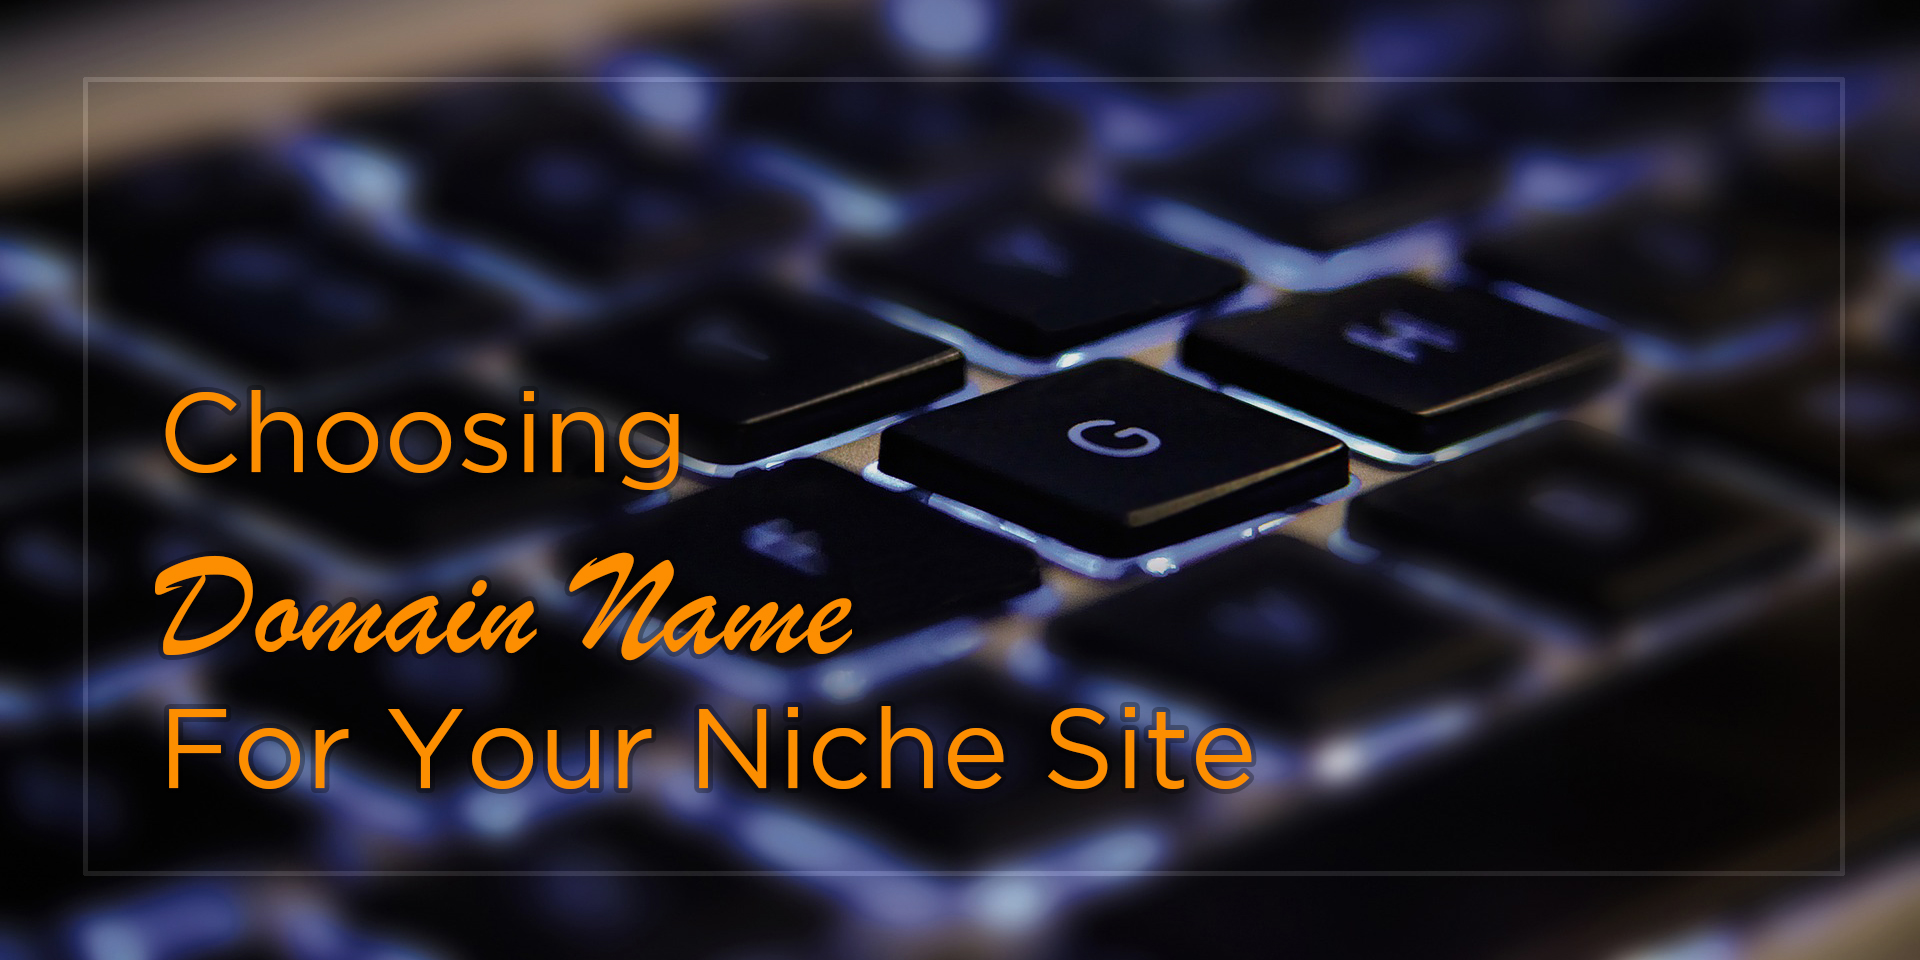 How To Choose Domain Name For Your Niche Site